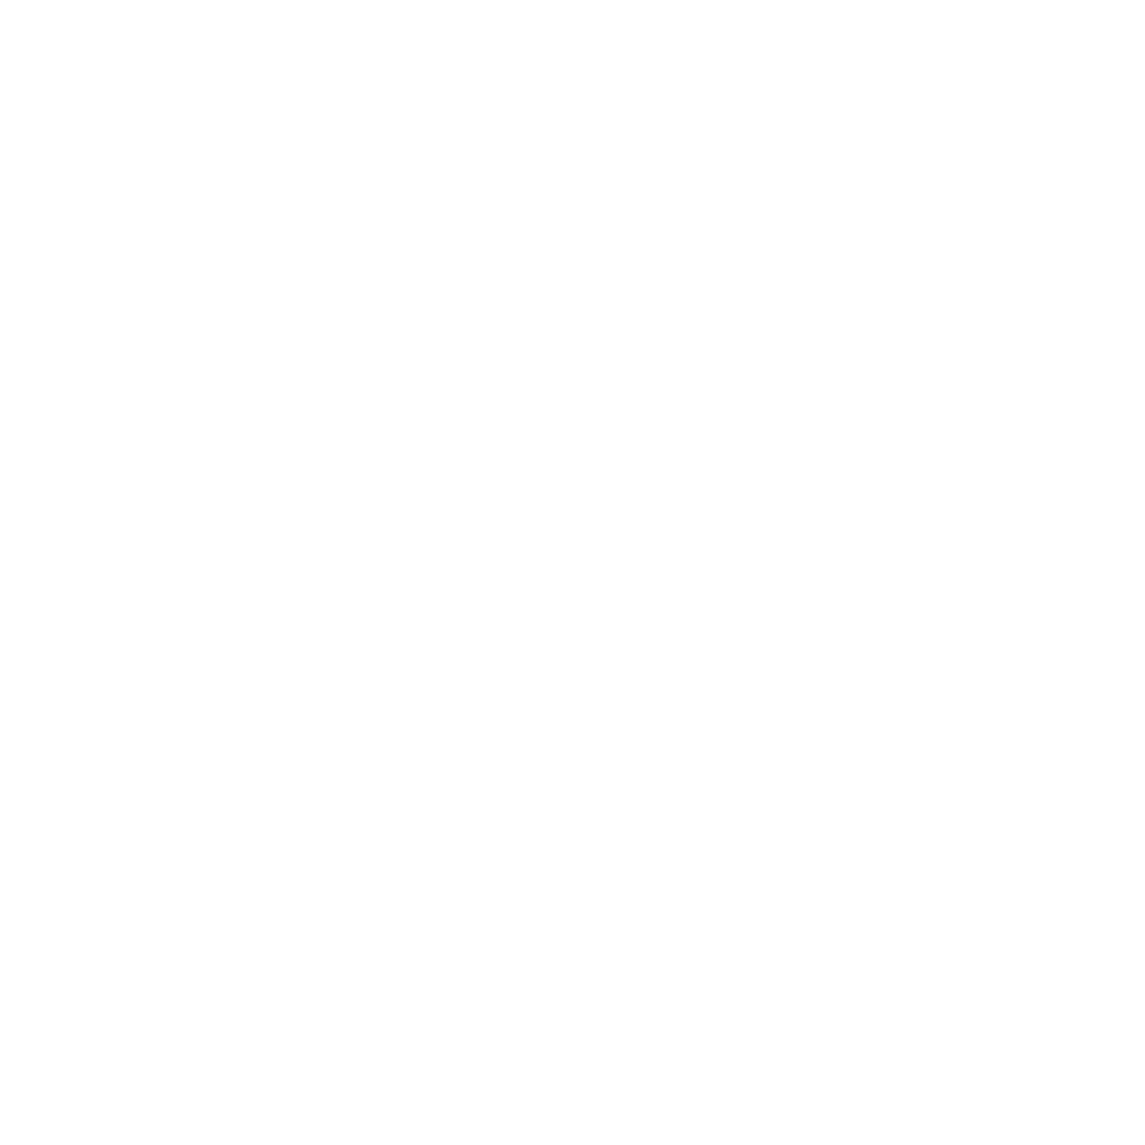 icon-tick.png [1.08 KB]